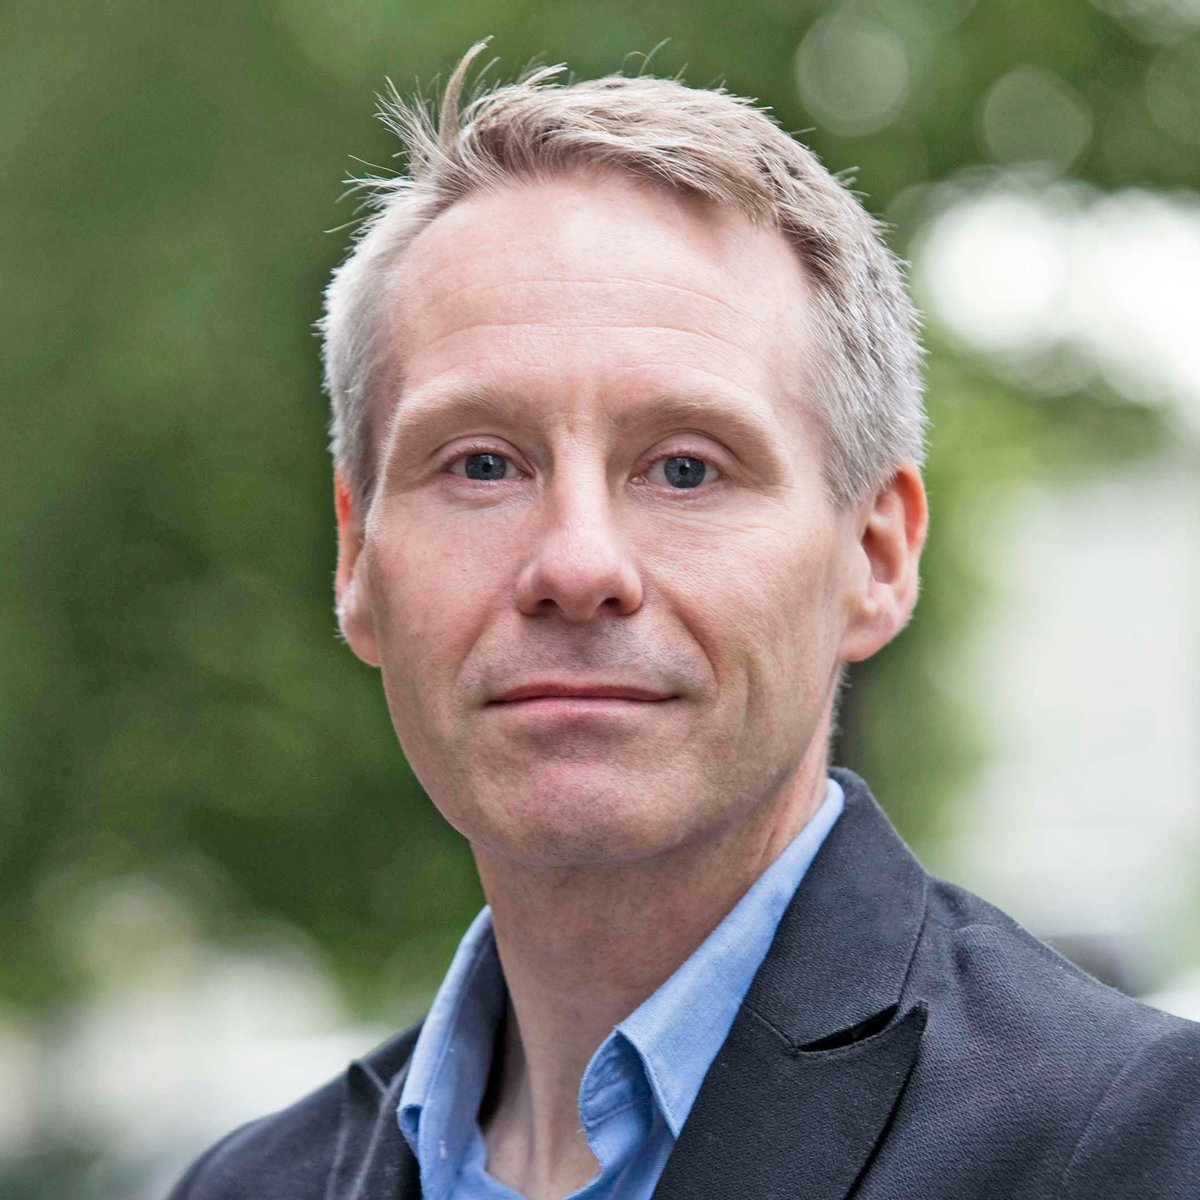 test Twitter Media - Meet our #PHM2020 Keynotes: David Hevey Head of the School of Psychology @PsychologyTCD More info here  https://t.co/g8l7MCTEvn https://t.co/GOm6Z84W5H